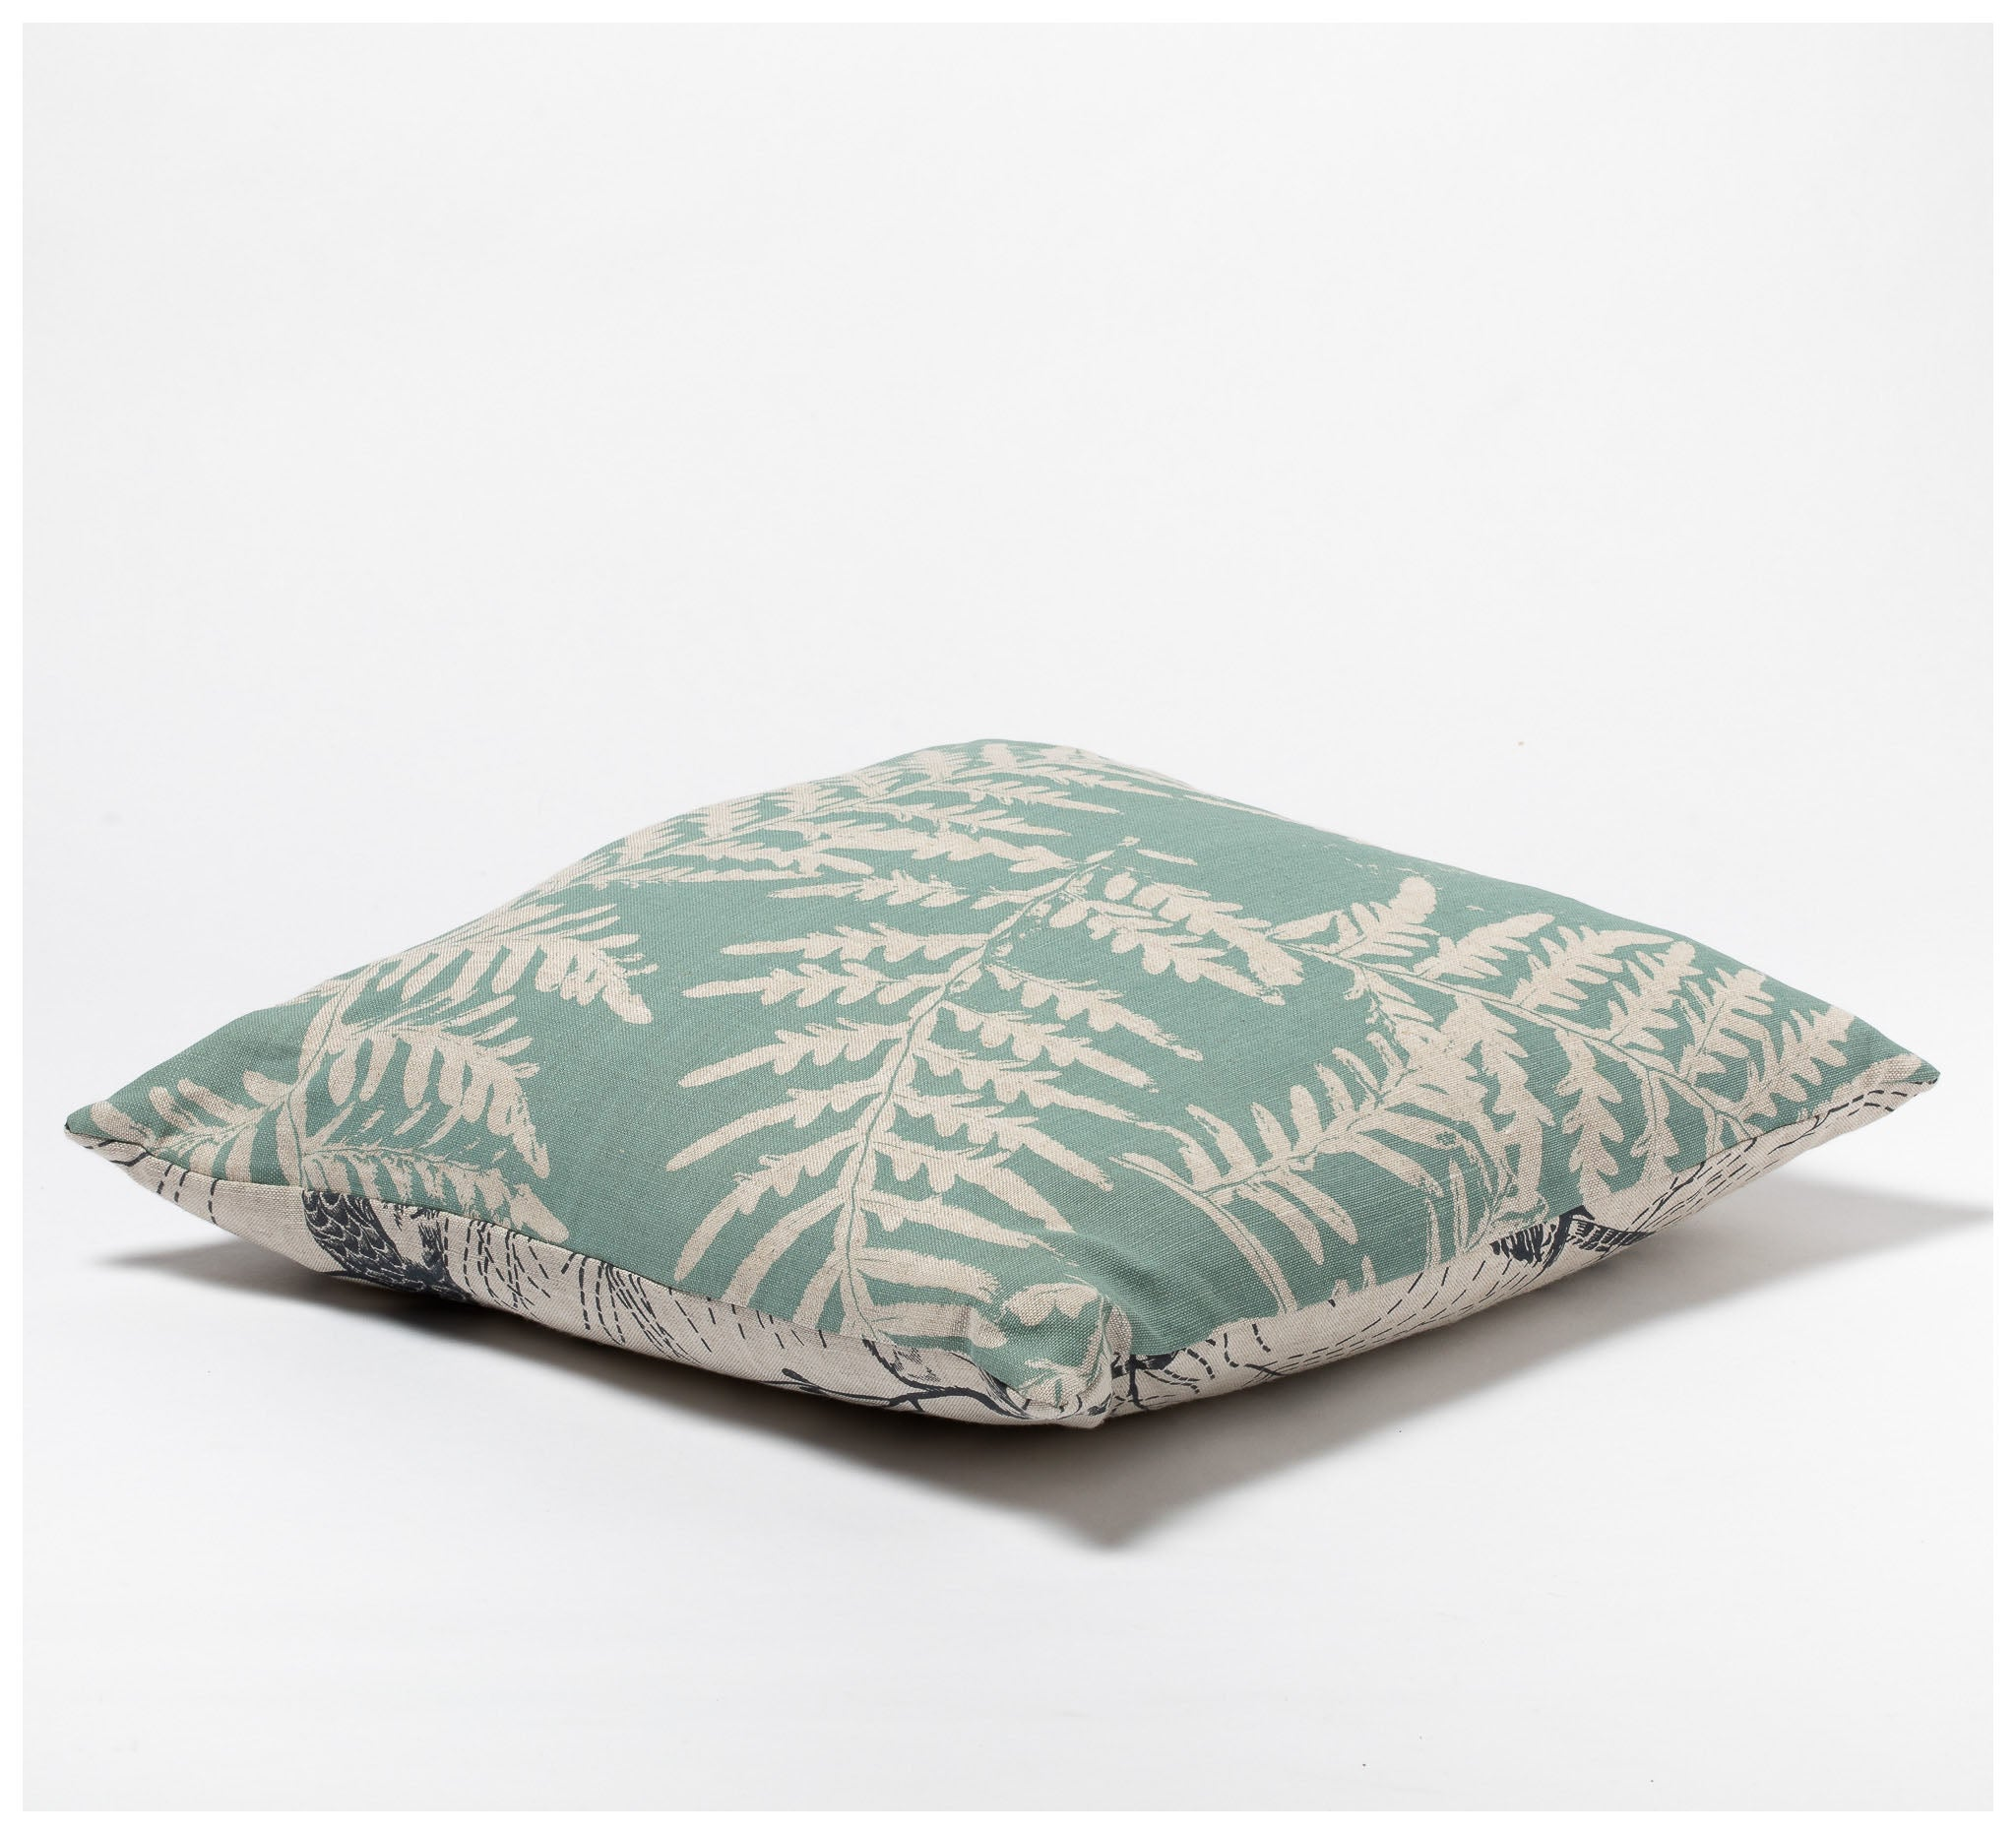 Ink & Spindle - 45cm Cushion – Bracken & Kookaburra